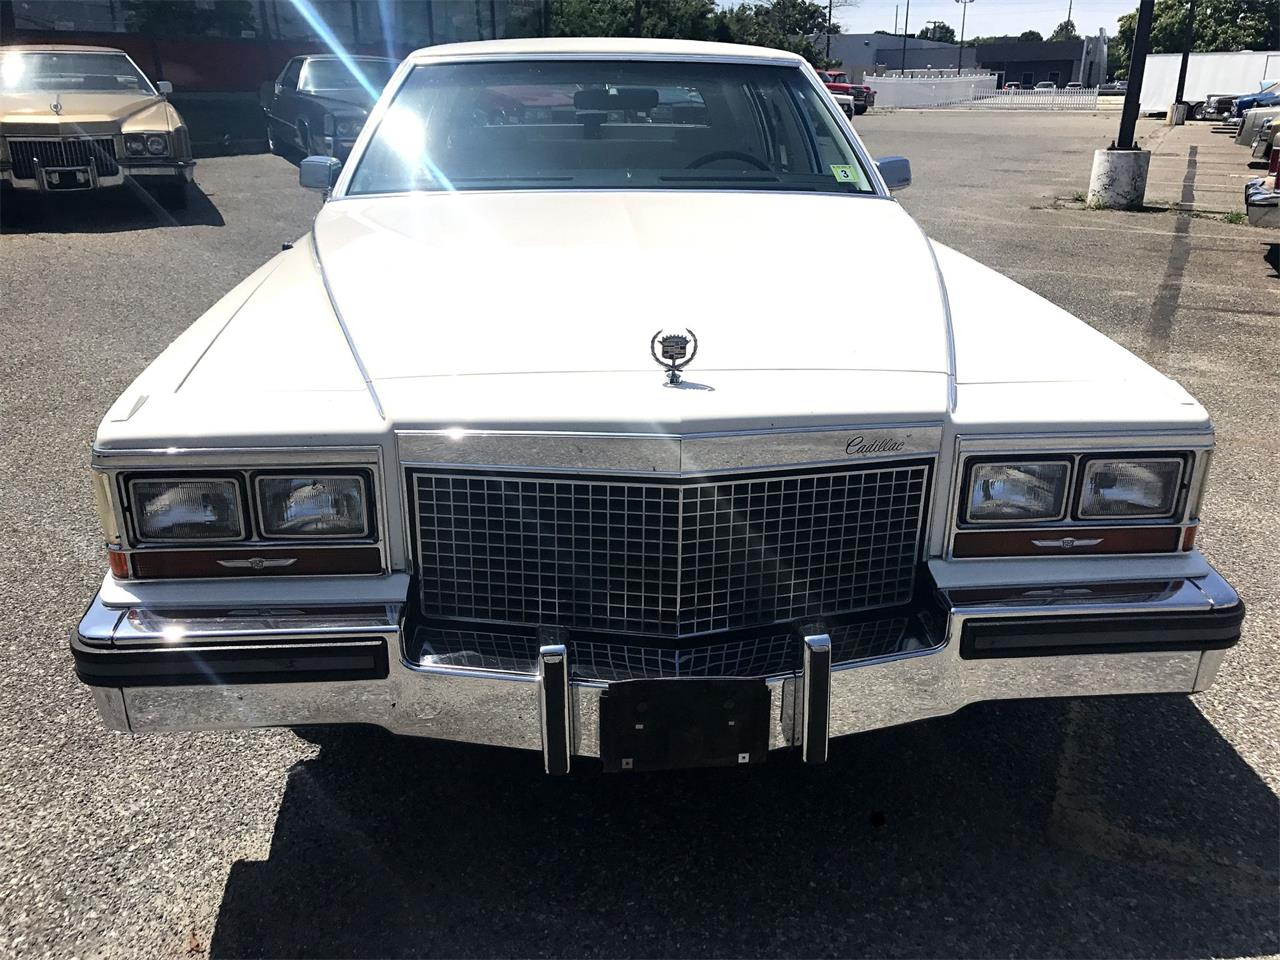 1987 Cadillac Fleetwood Brougham for sale in Stratford, NJ – photo 2